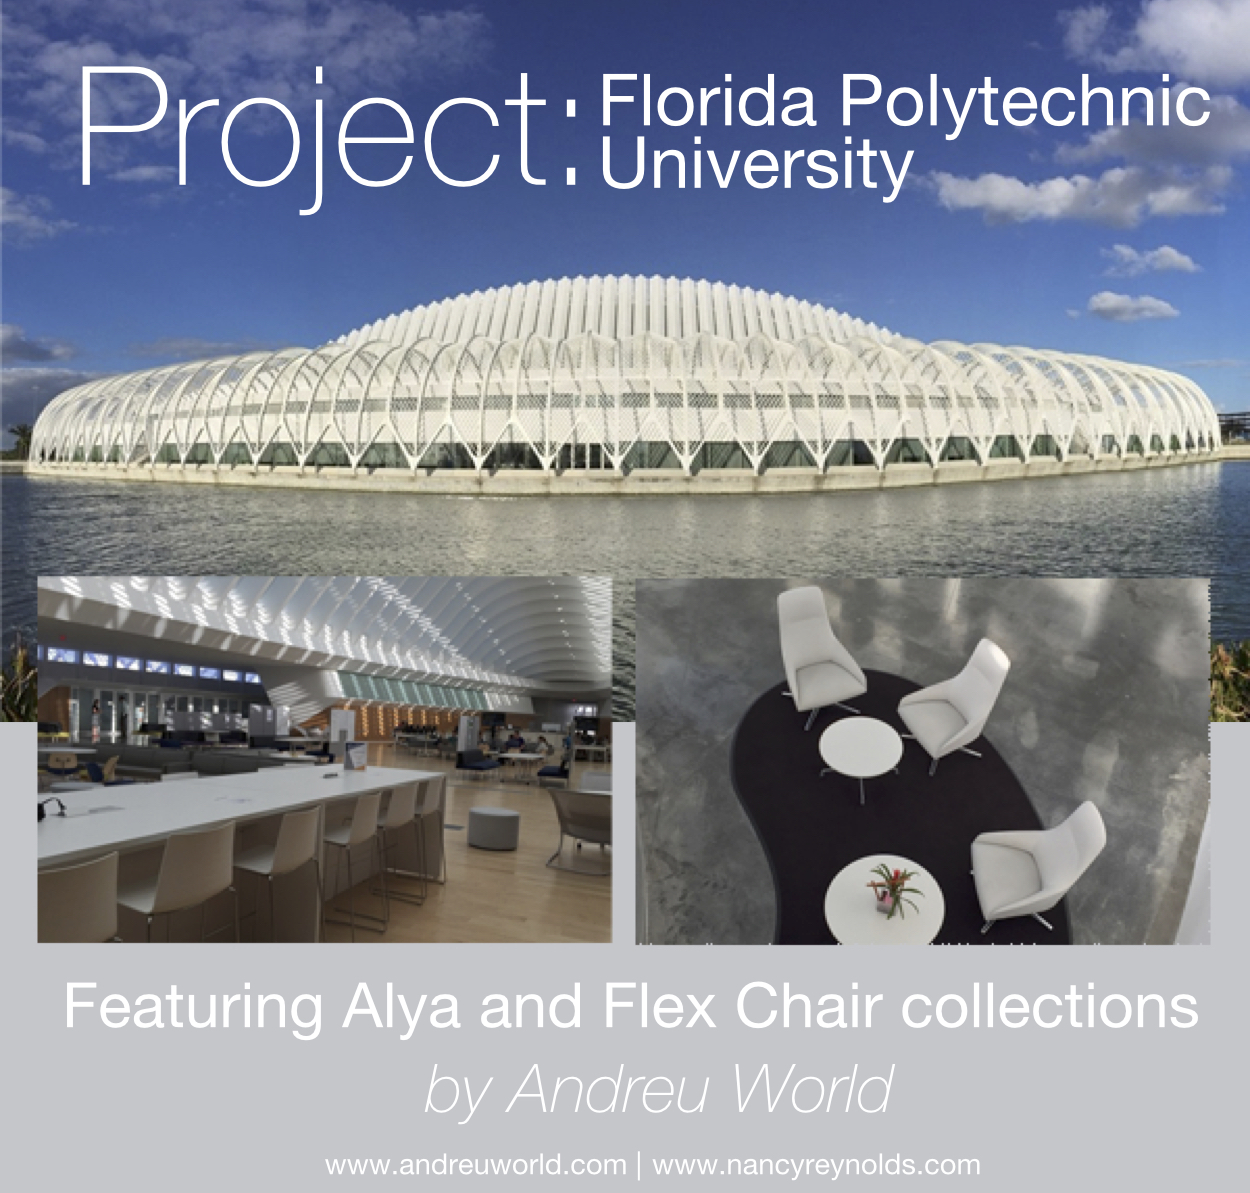 Florida Polytech University by Andreu World.jpg